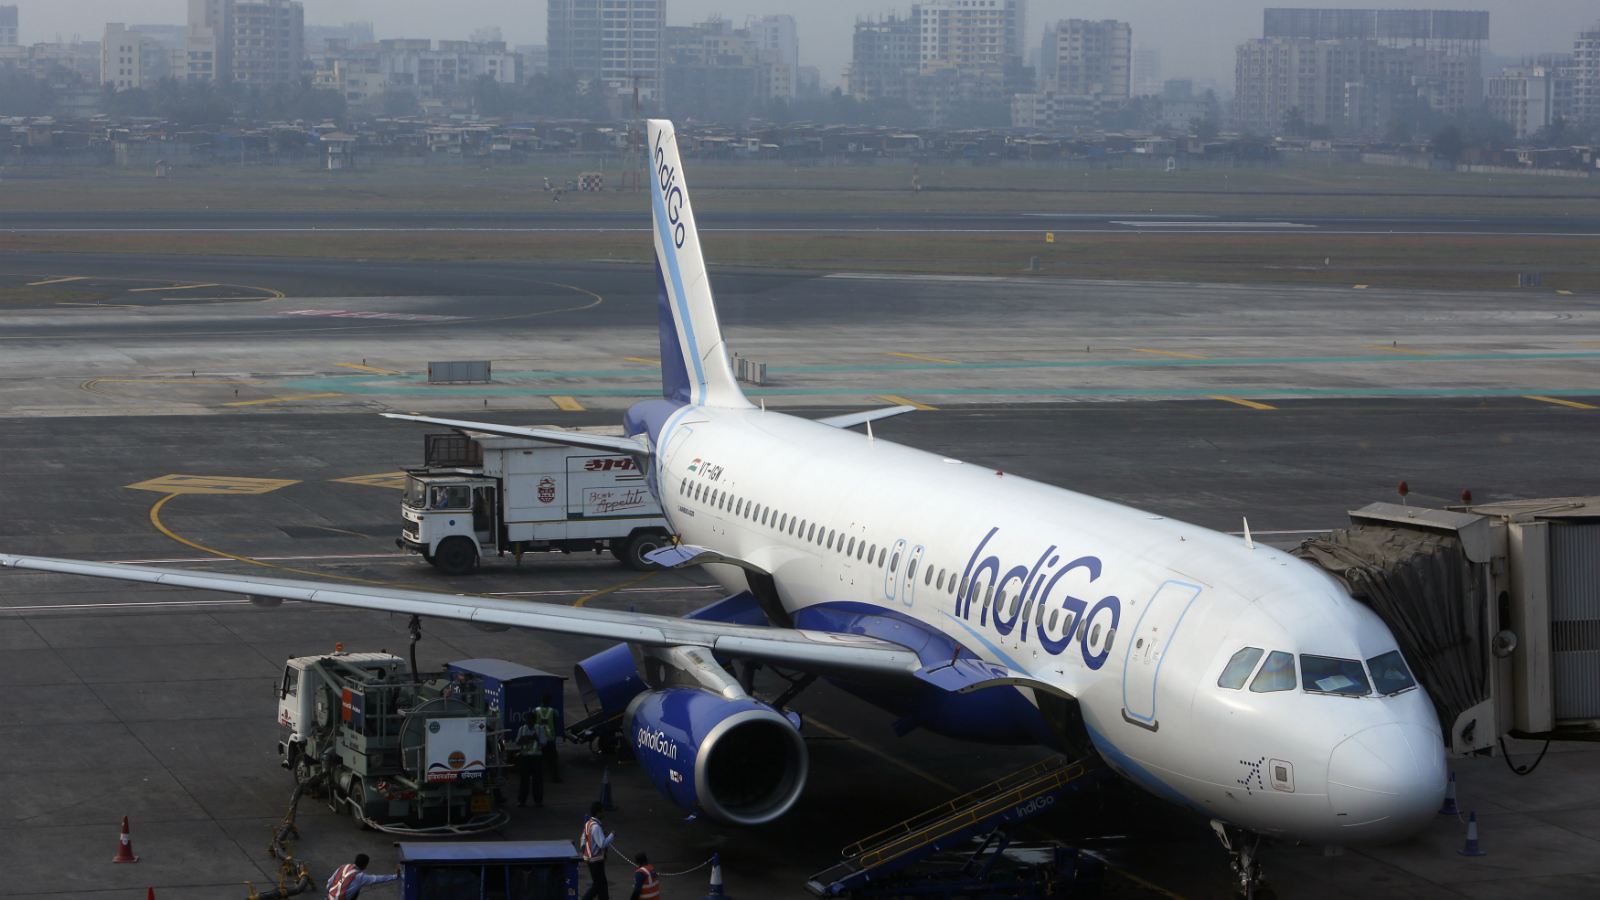 An IndiGo Airlines Airbus A320 aircraft is pictured parked at a gate at Mumbai's Chhatrapathi Shivaji International Airport February 3, 2013.